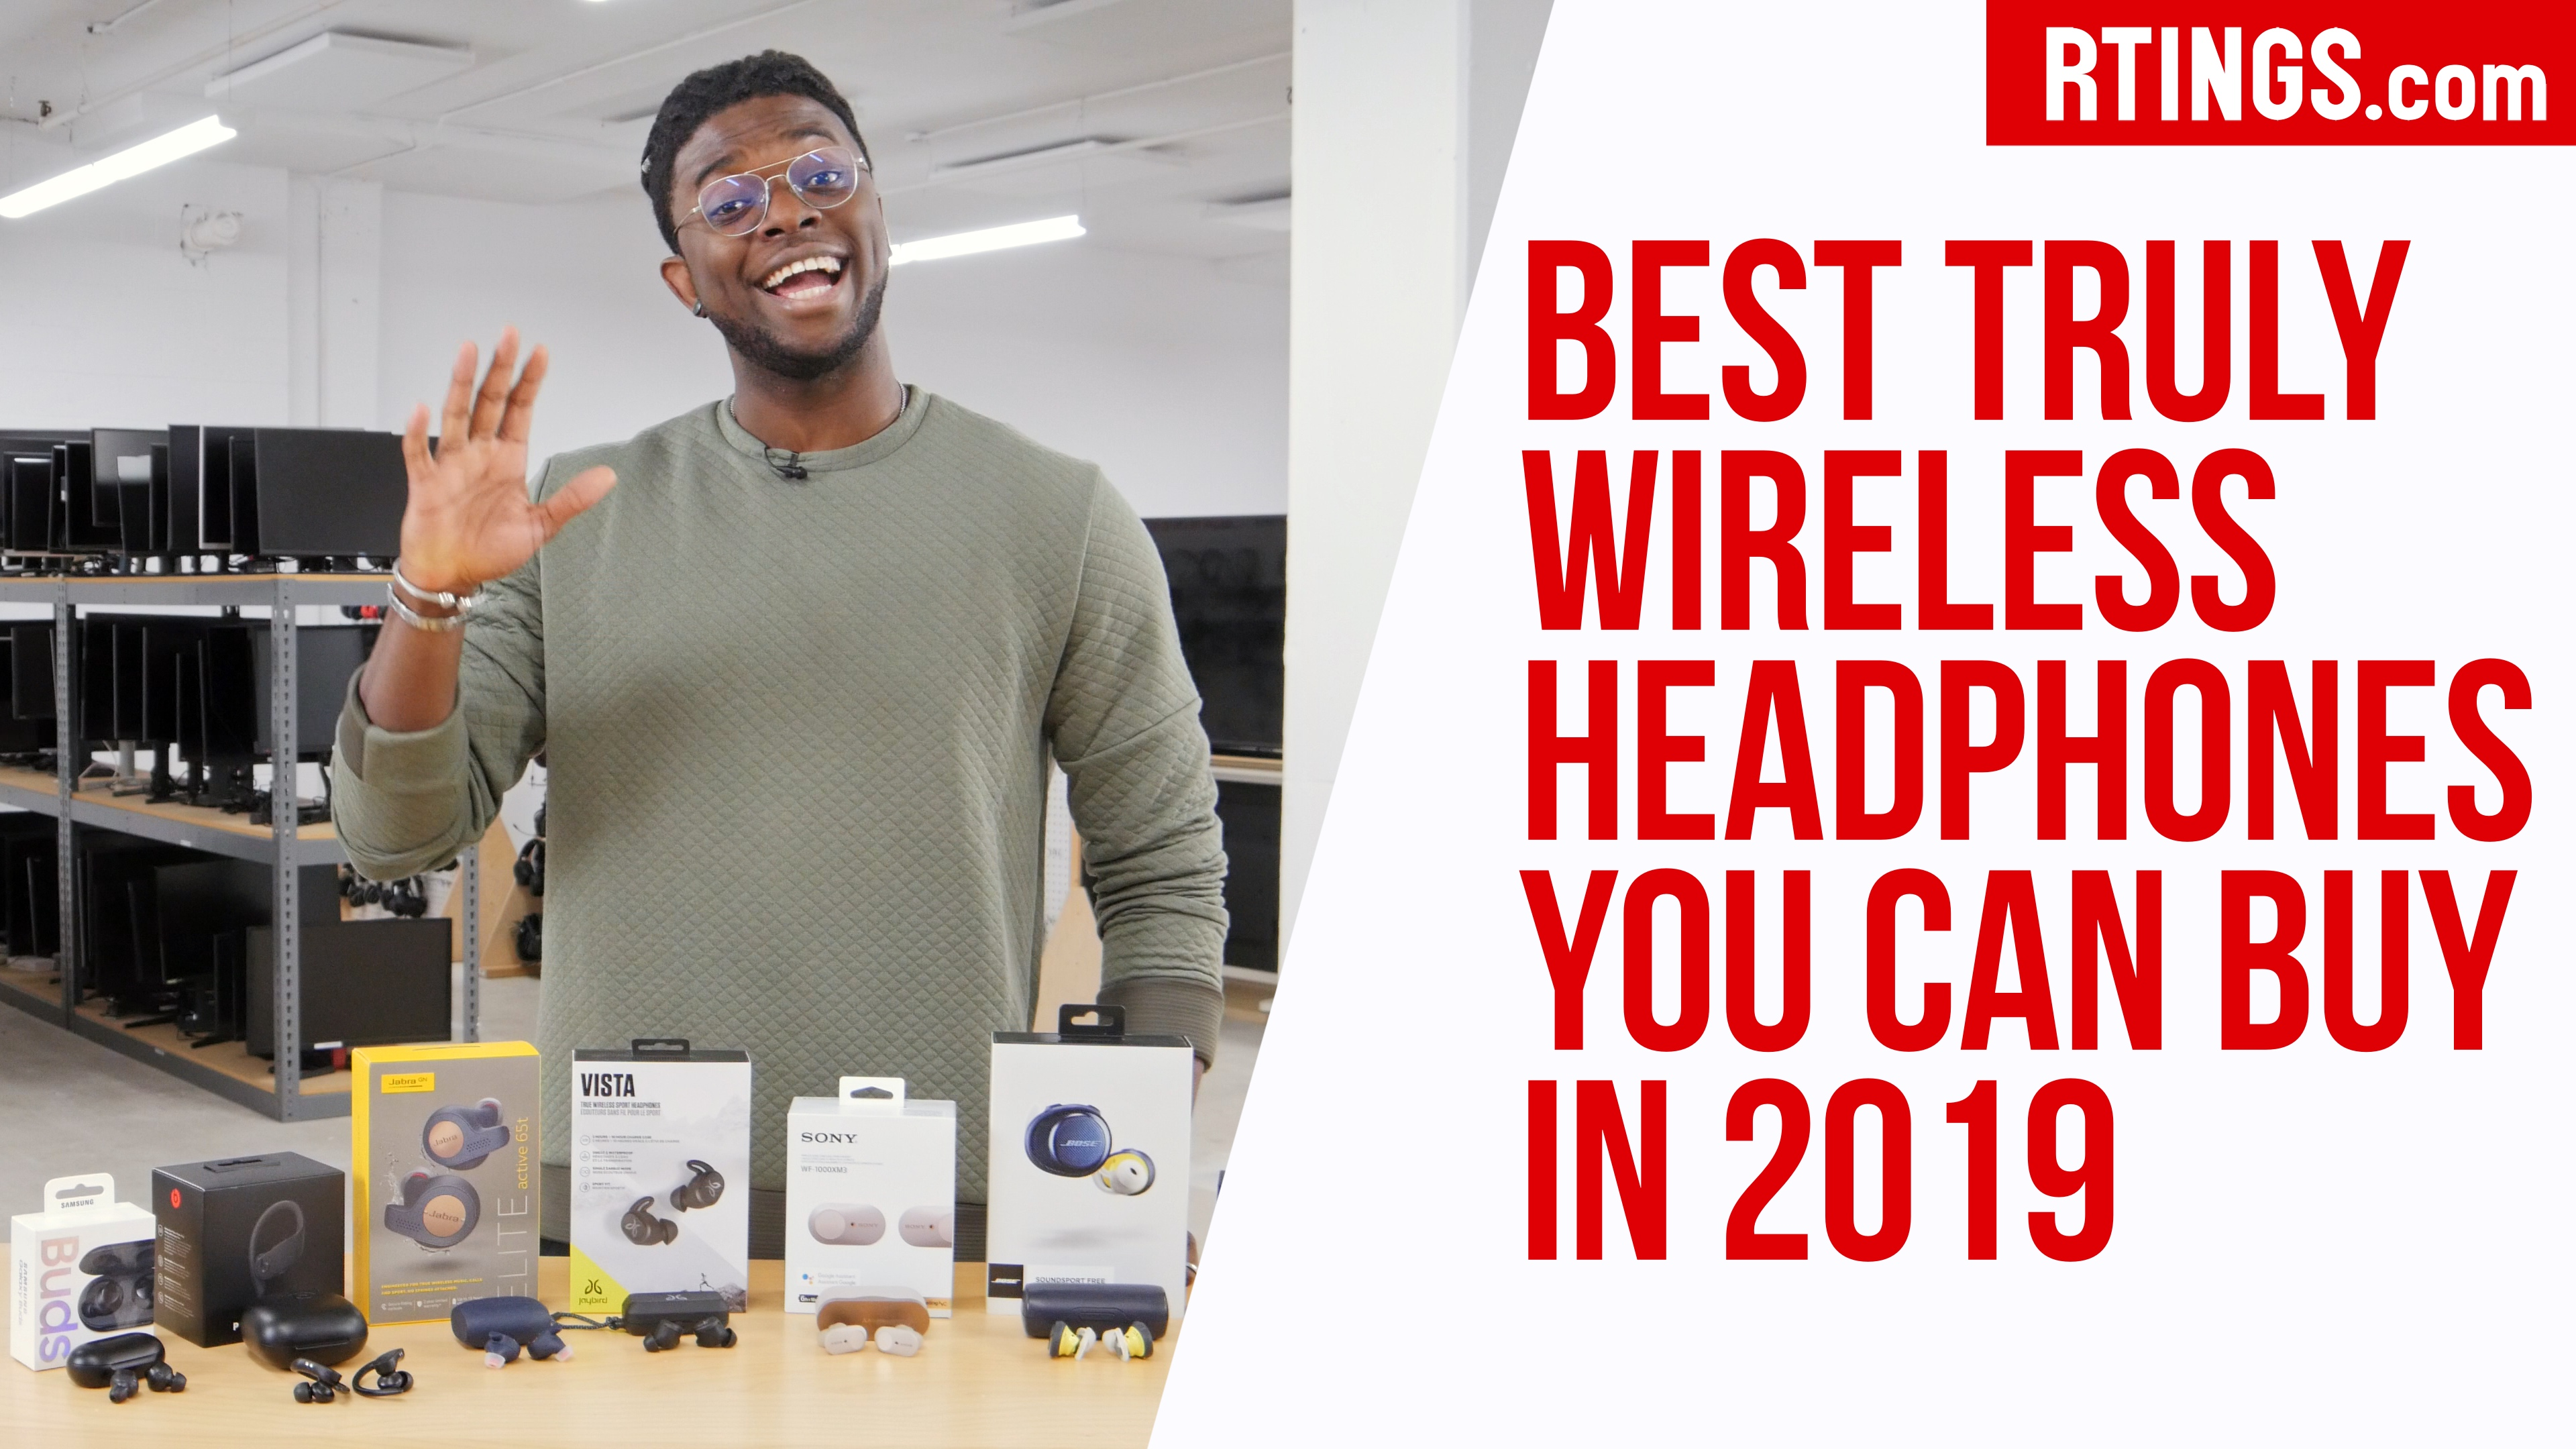 Best Truly Wireless Headphones You Can Buy In 2019